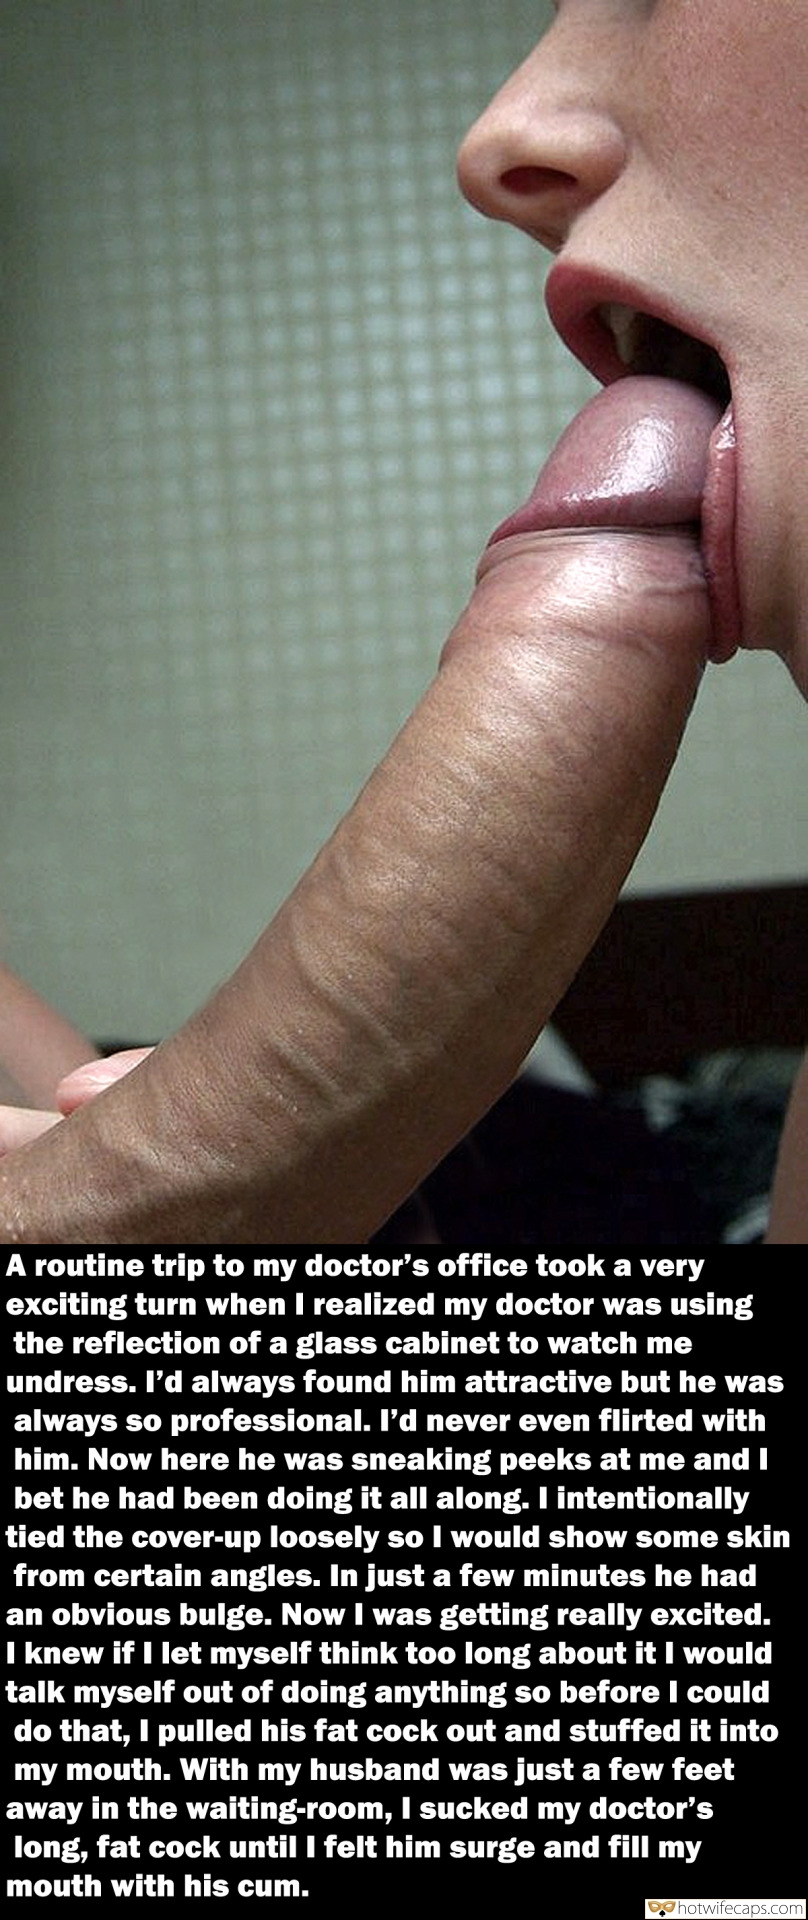 Dirty Talk Blowjob  hotwife caption: A routine trip to my doctor's office took a very exciting turn when I realized my doctor was using the reflection of a glass cabinet to watch me undress. l'd always found him attractive but he was always so professional....